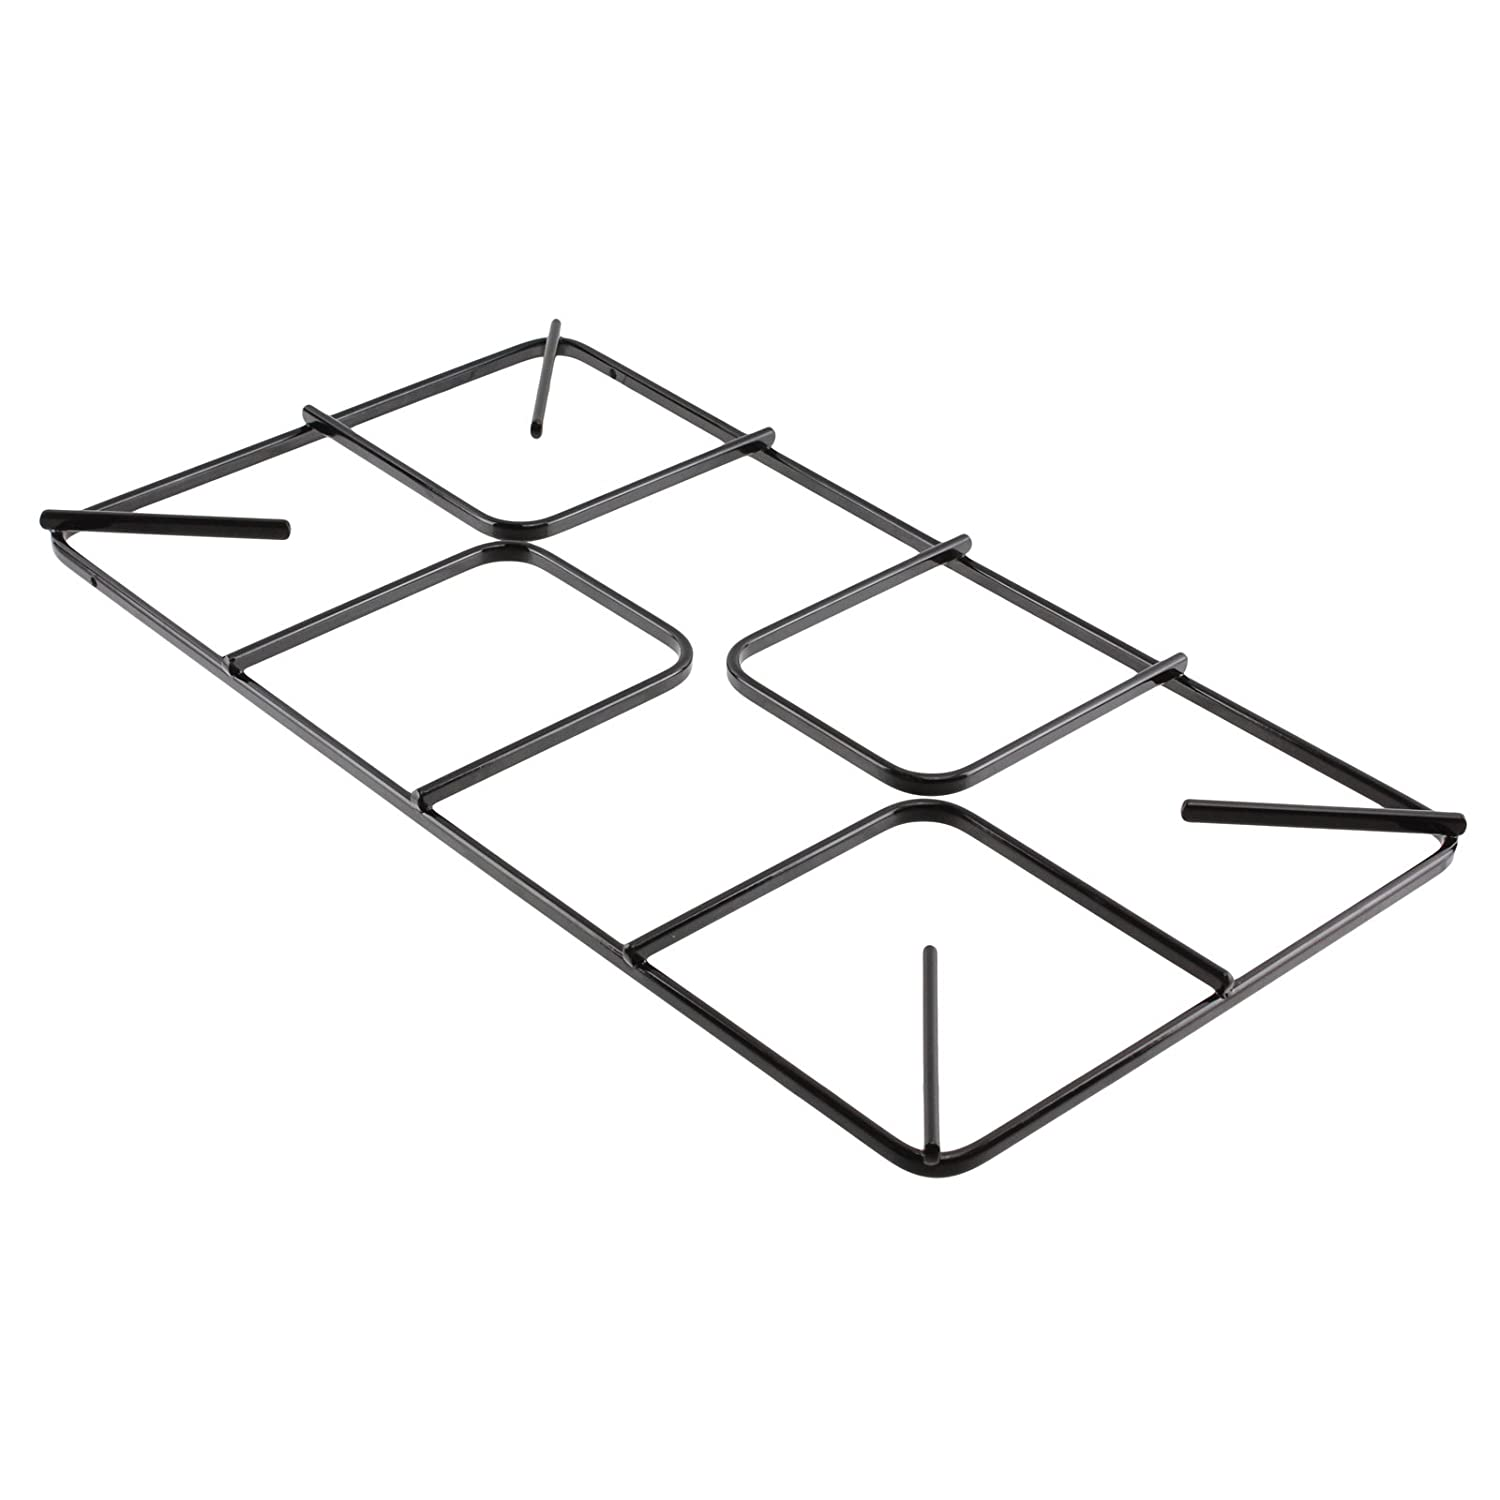 SPARES2GO Flat Gas Hob Pan Support Stand for Lamona Oven Cookers (455mm x 245mm, Large)